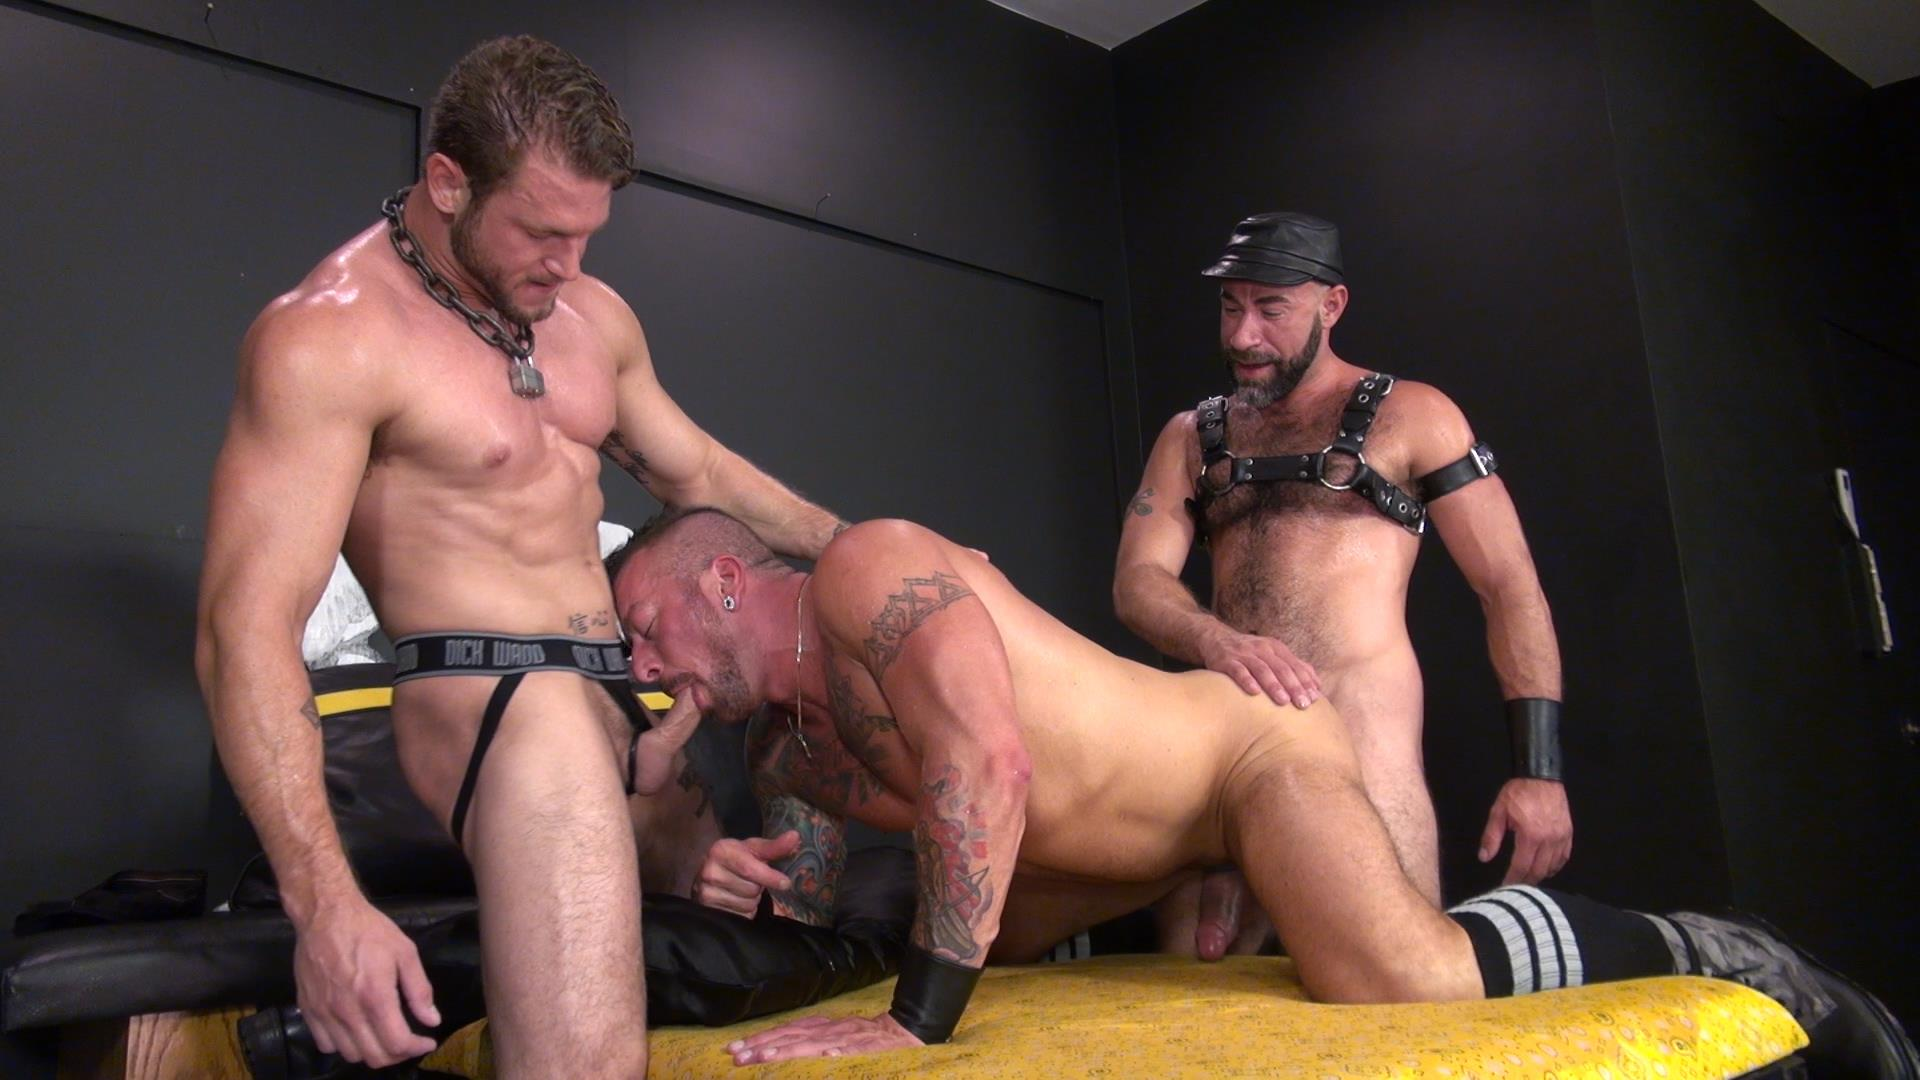 Raw-and-Rough-Boy-Fillmore-Dolf-Dietrich-Damon-Andros-Hugh-Hunter-Ace-Era-Free-Gay-Porn-03 Bareback Fuck And Piss Party At An Underground Sex Club